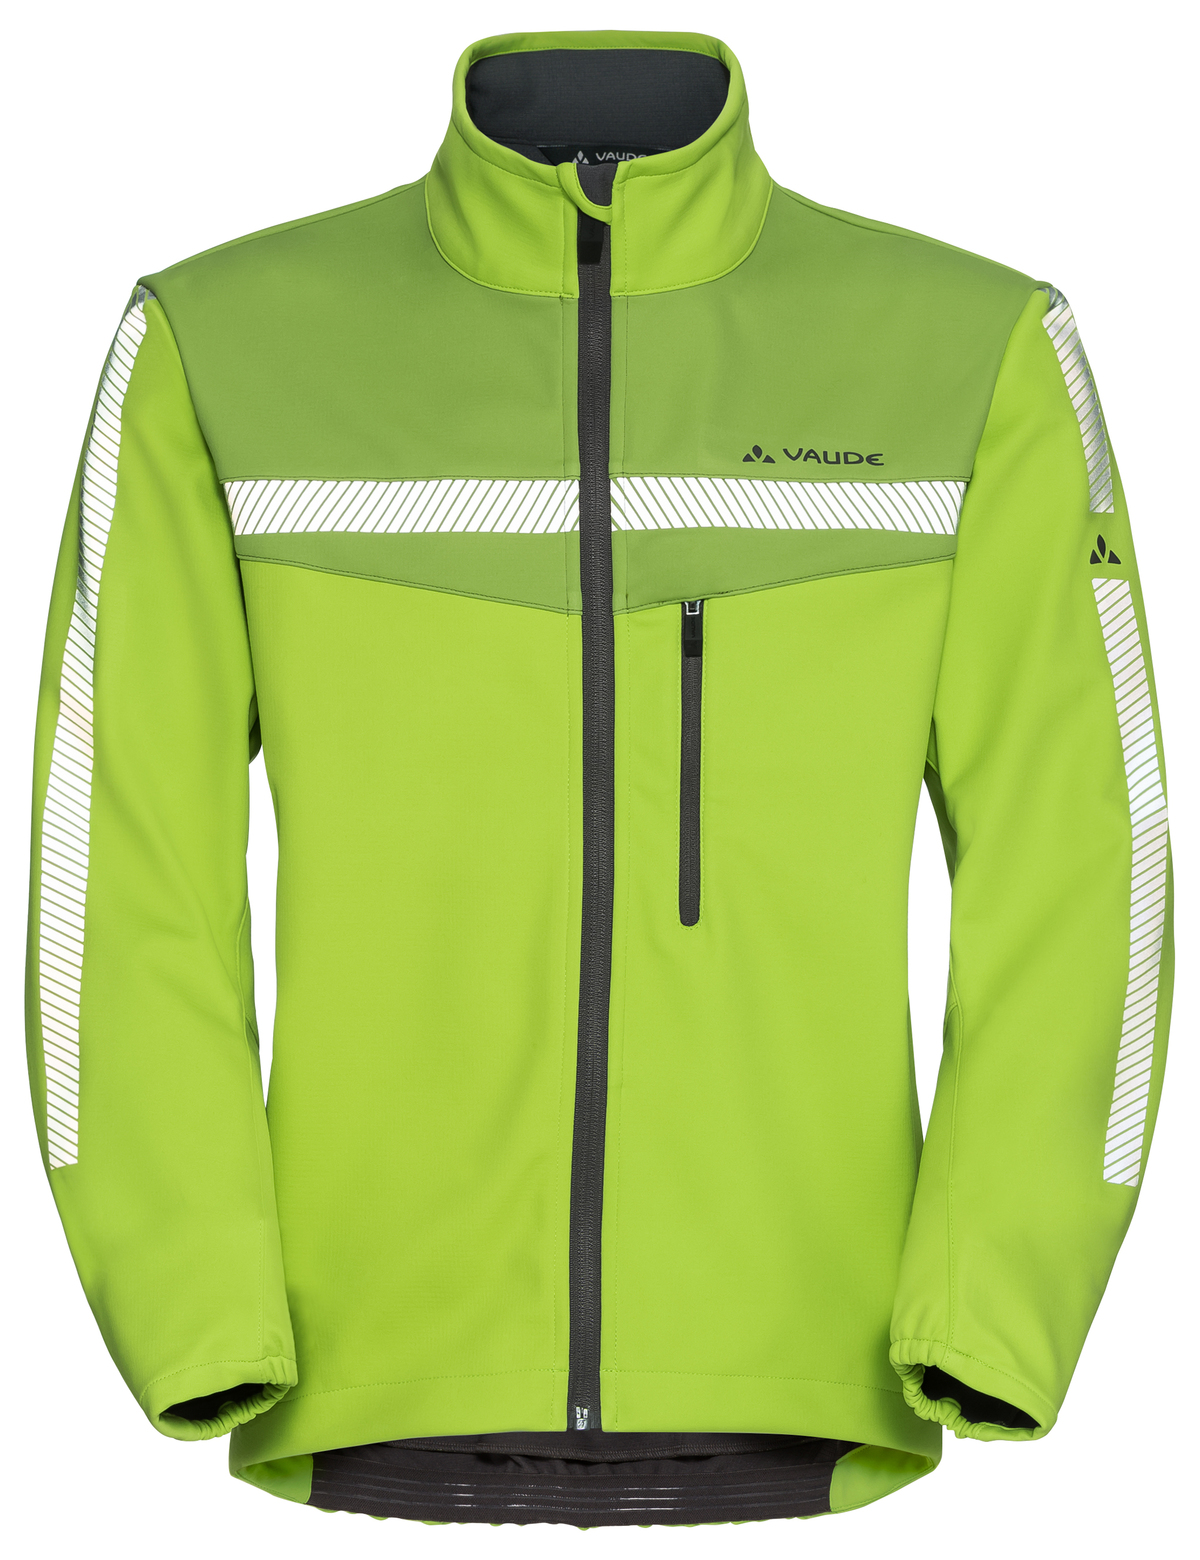 VAUDE Men´s Luminum Softshell Jacket chute green Größe M - VAUDE Men´s Luminum Softshell Jacket chute green Größe M